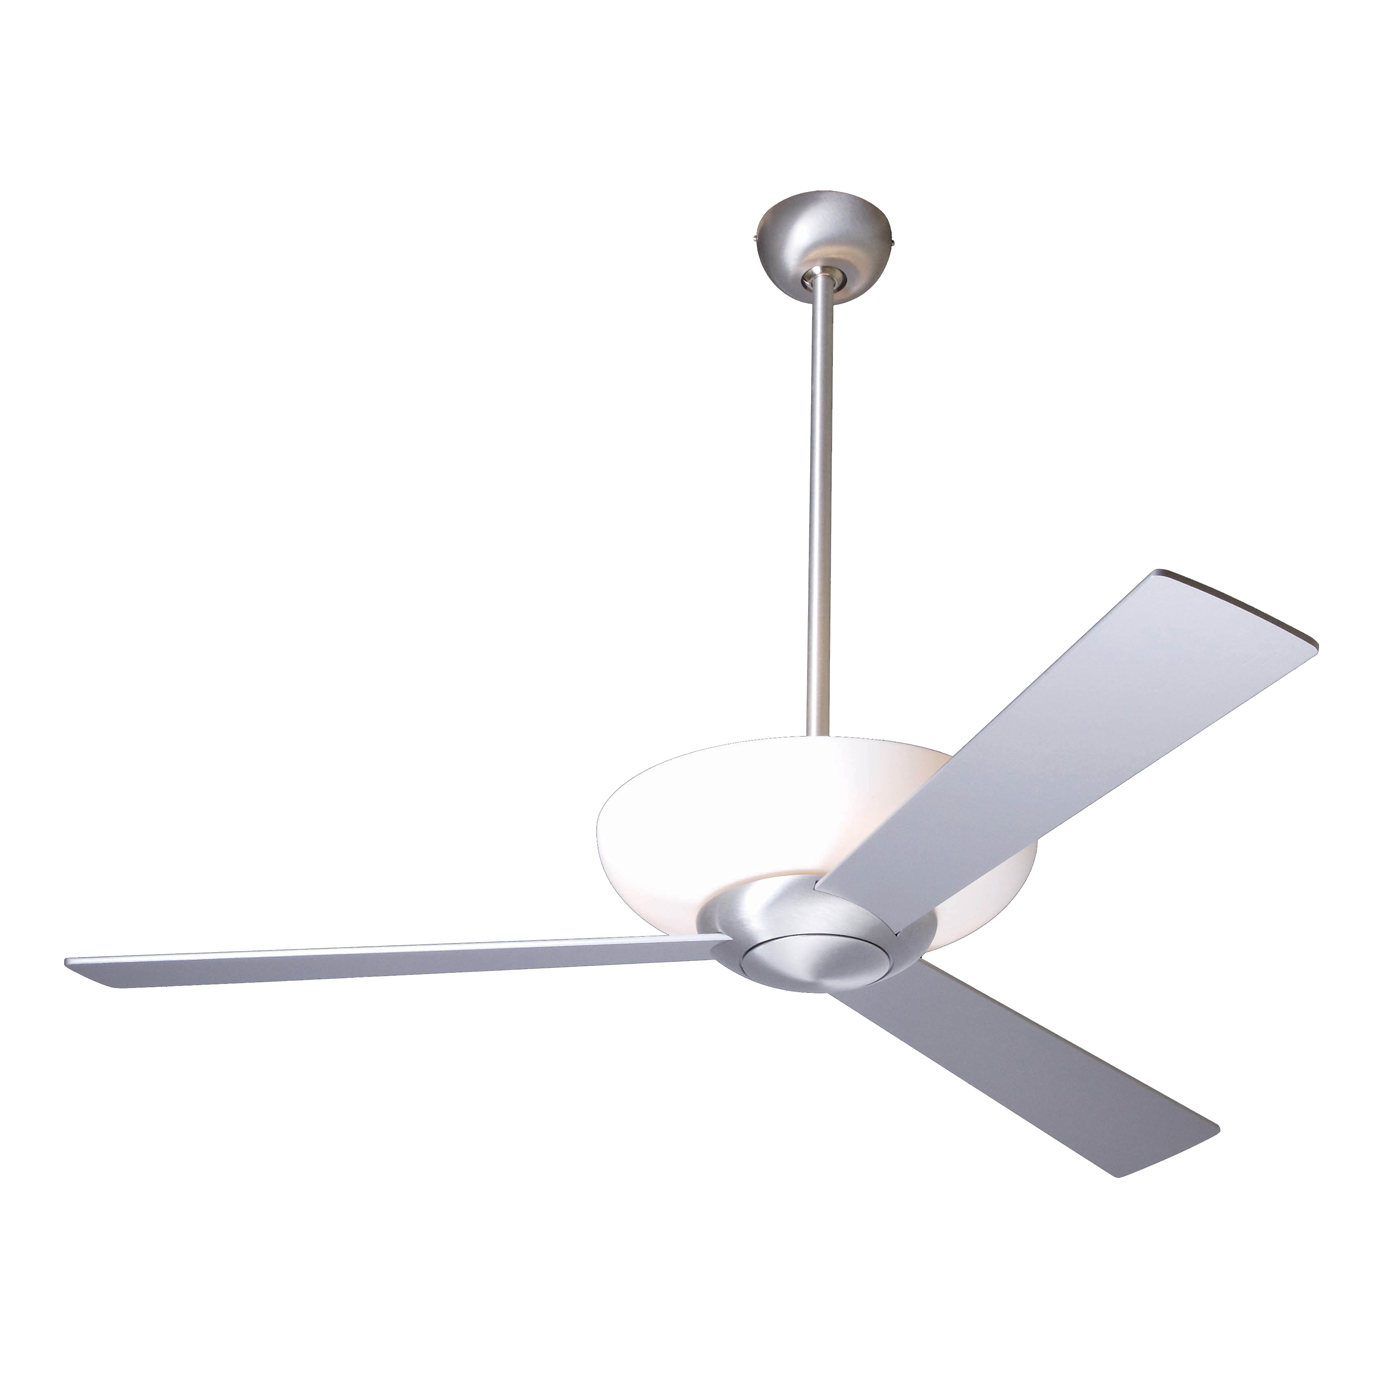 Modern Ceiling Fan Company: Aurora Ceiling Fan With Light